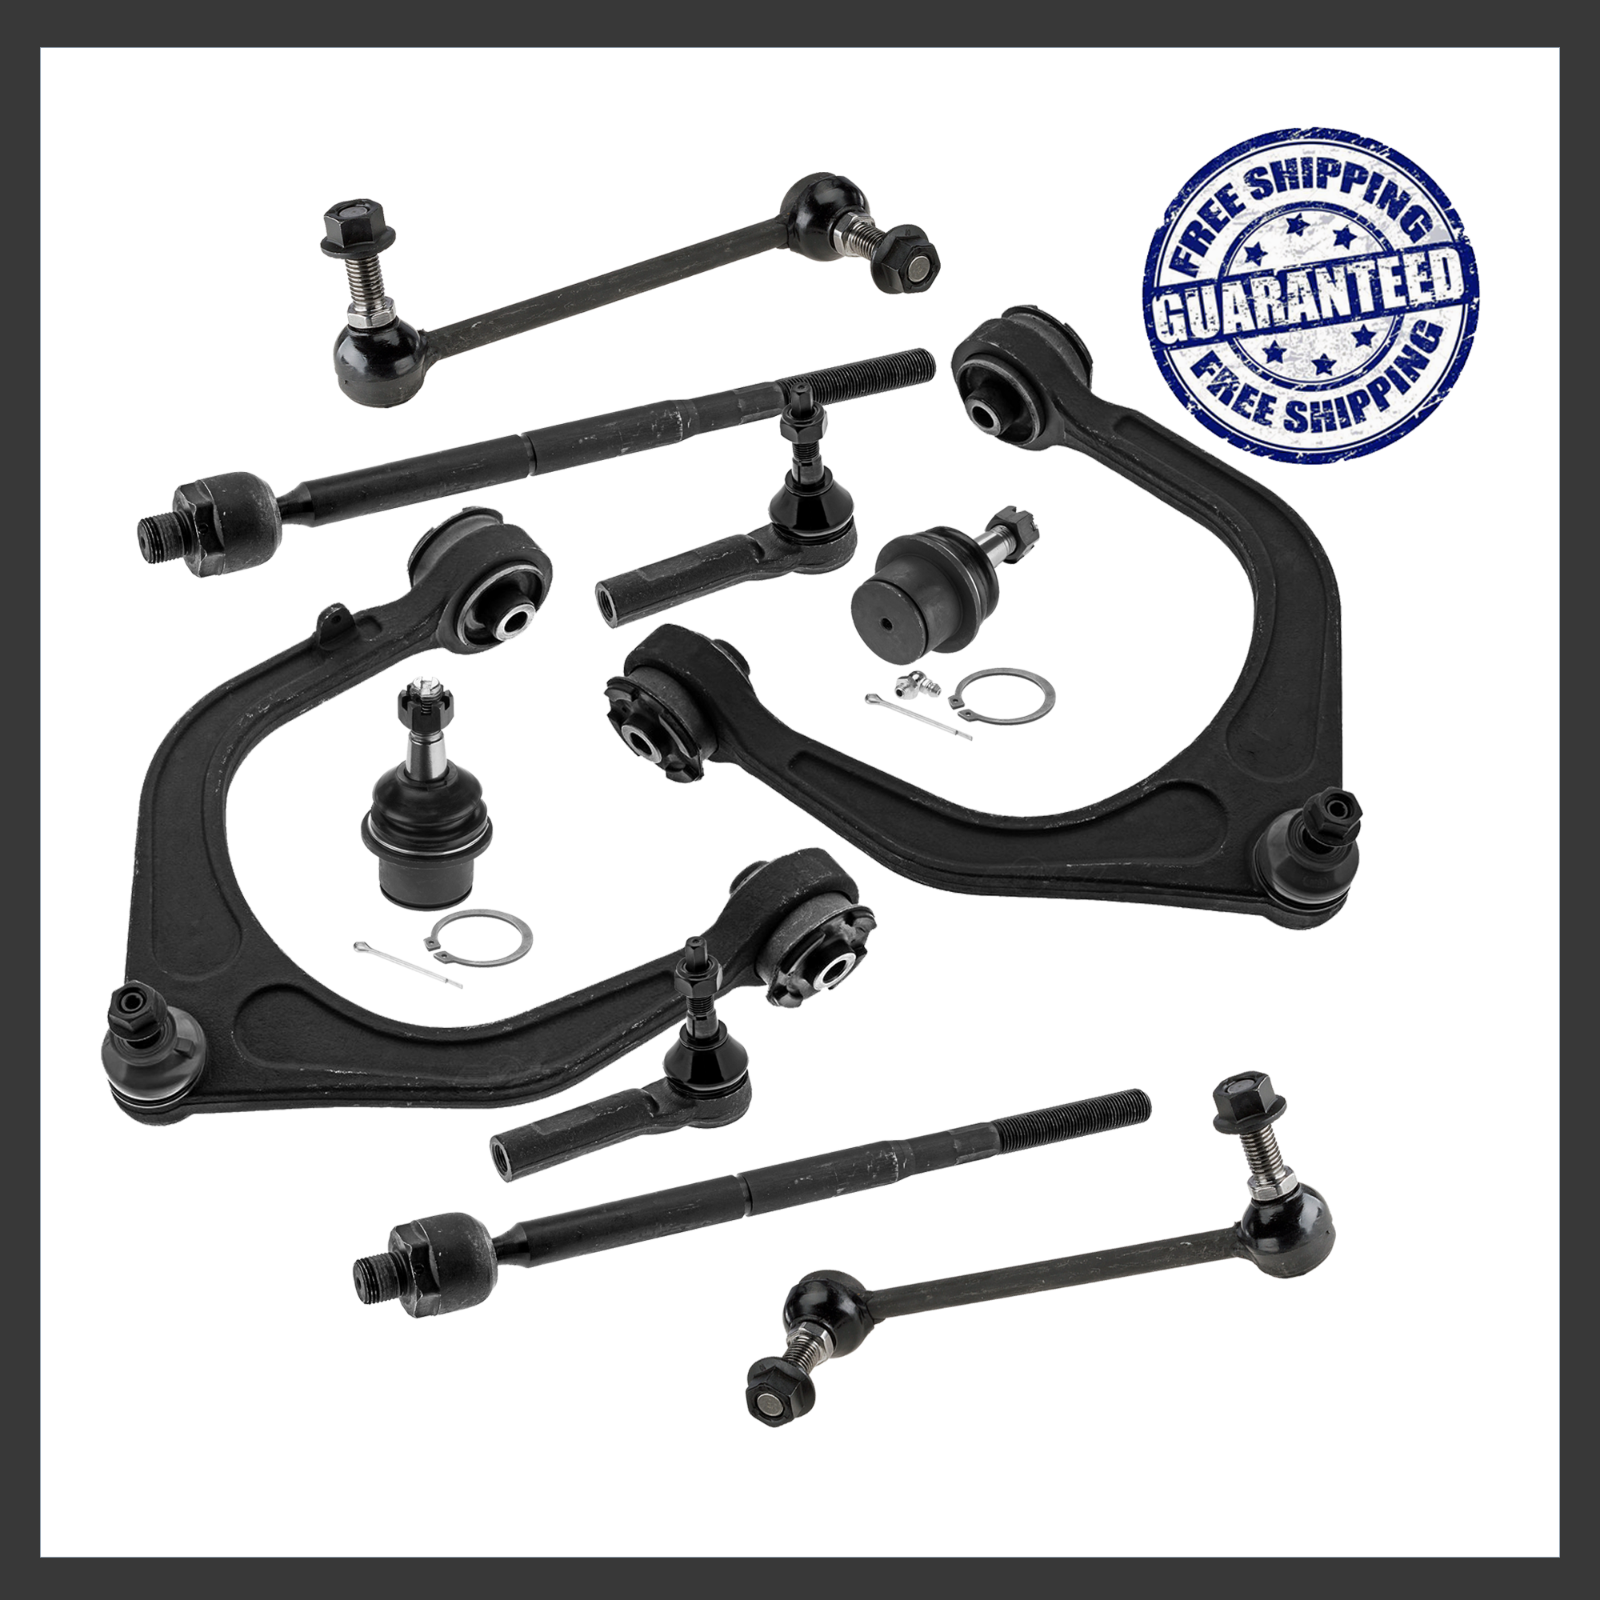 4 Both Brand New Complete 6-Piece Front Suspension Kit for Dodge Dakota /& Durango RWD//2WD- 10-Year Warranty- All 2 Front Stablizer Sway bar end link Front Upper /& Lower Ball Joints Detroit Axle